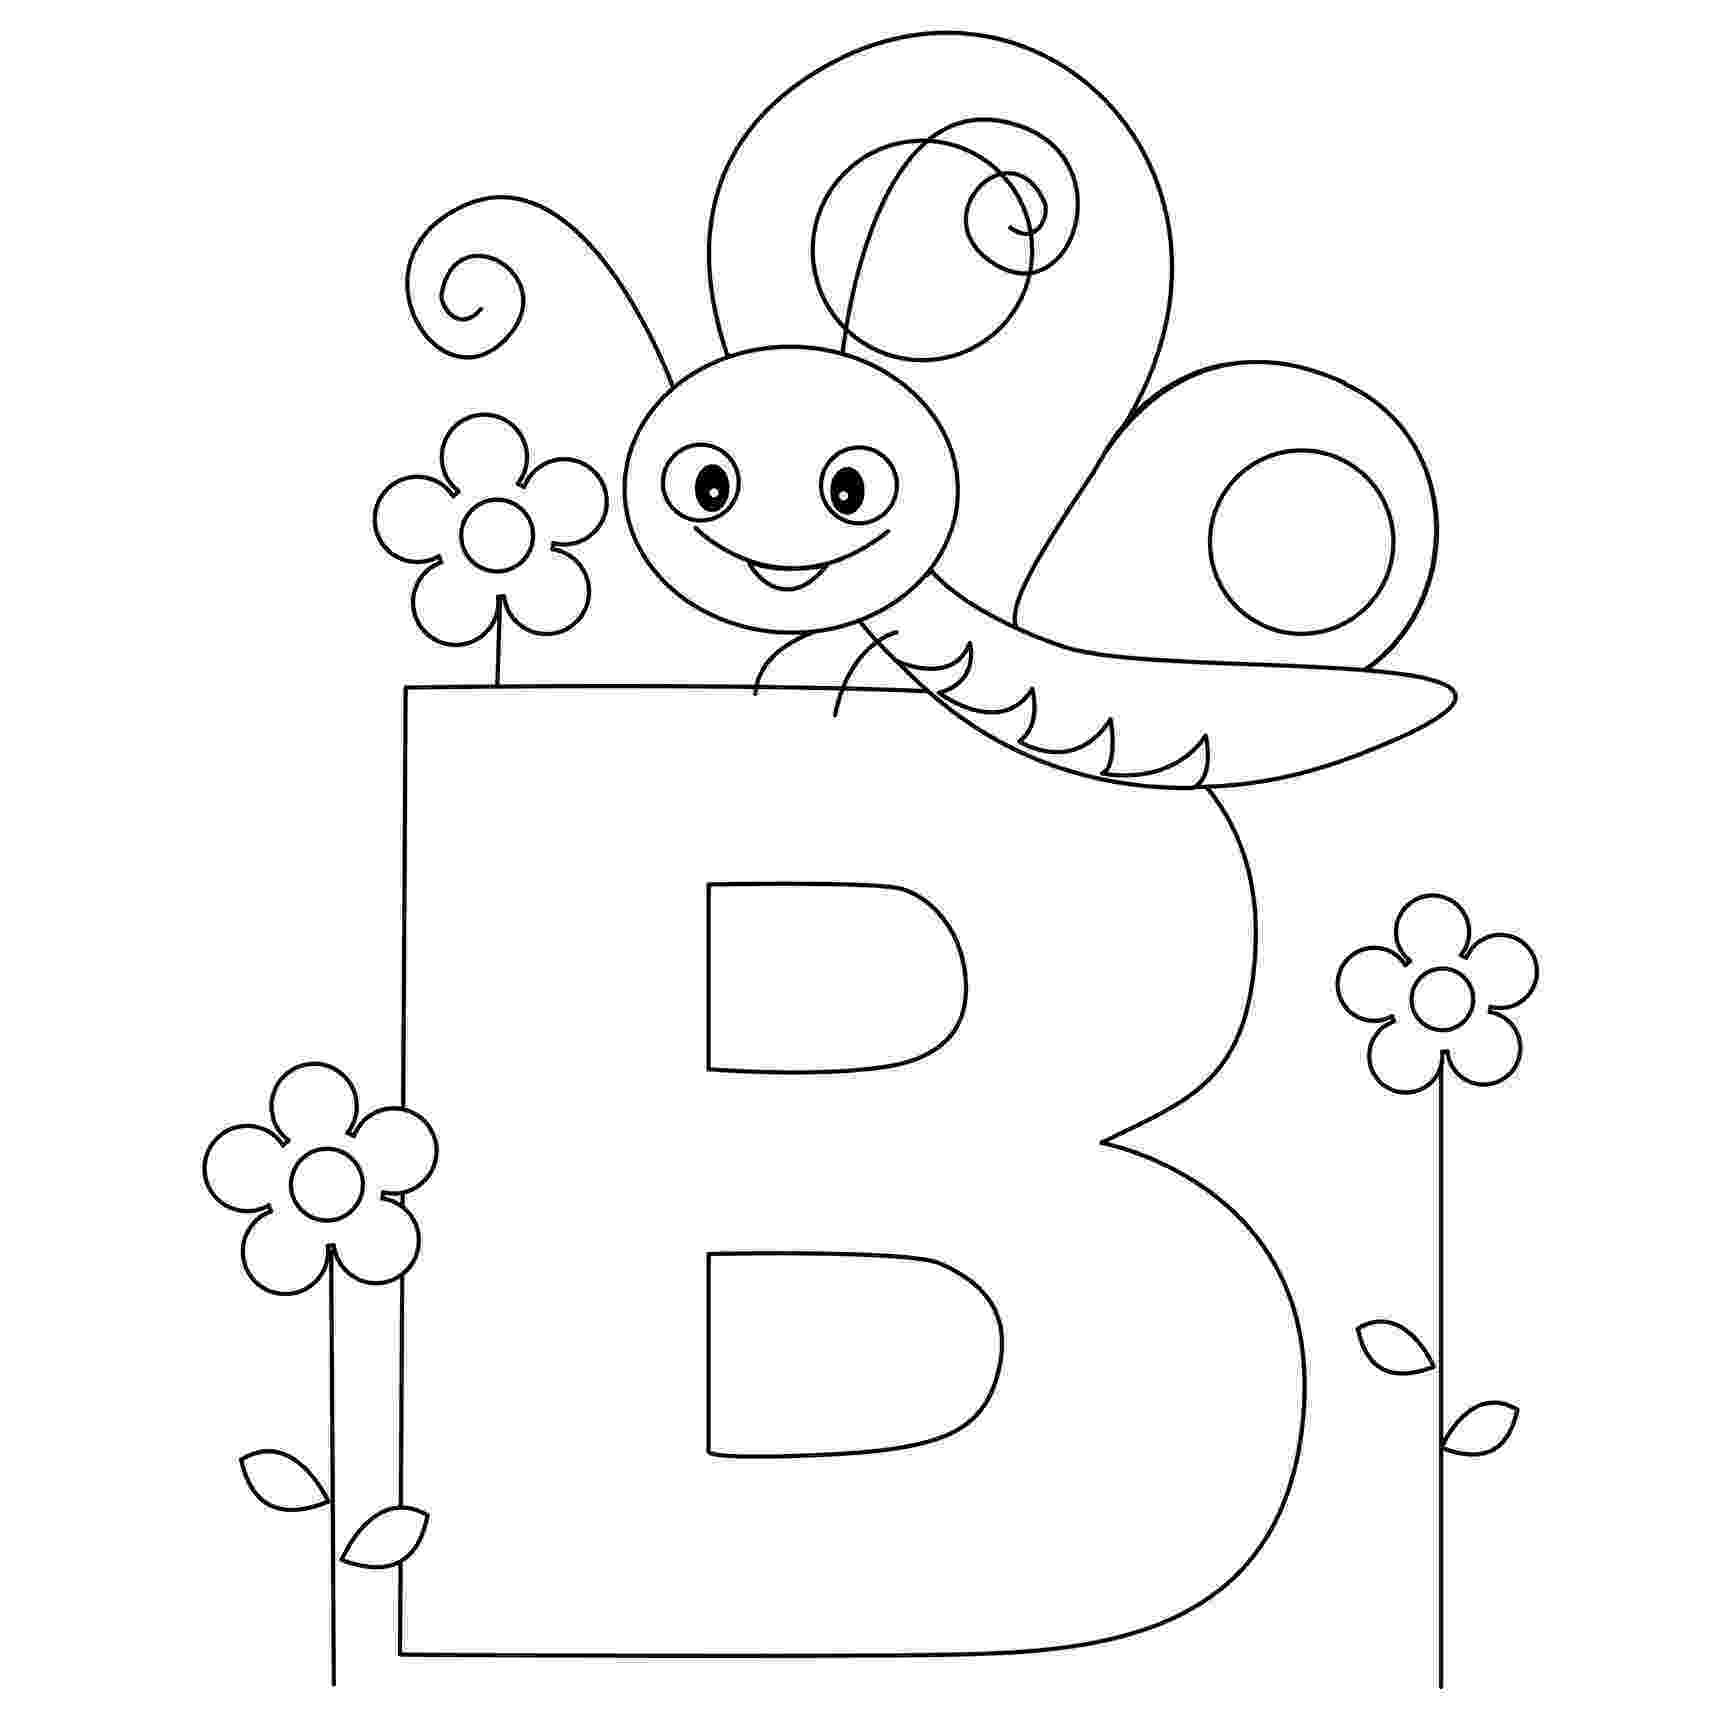 printable coloring alphabet letters free printable alphabet coloring pages for kids best coloring letters printable alphabet